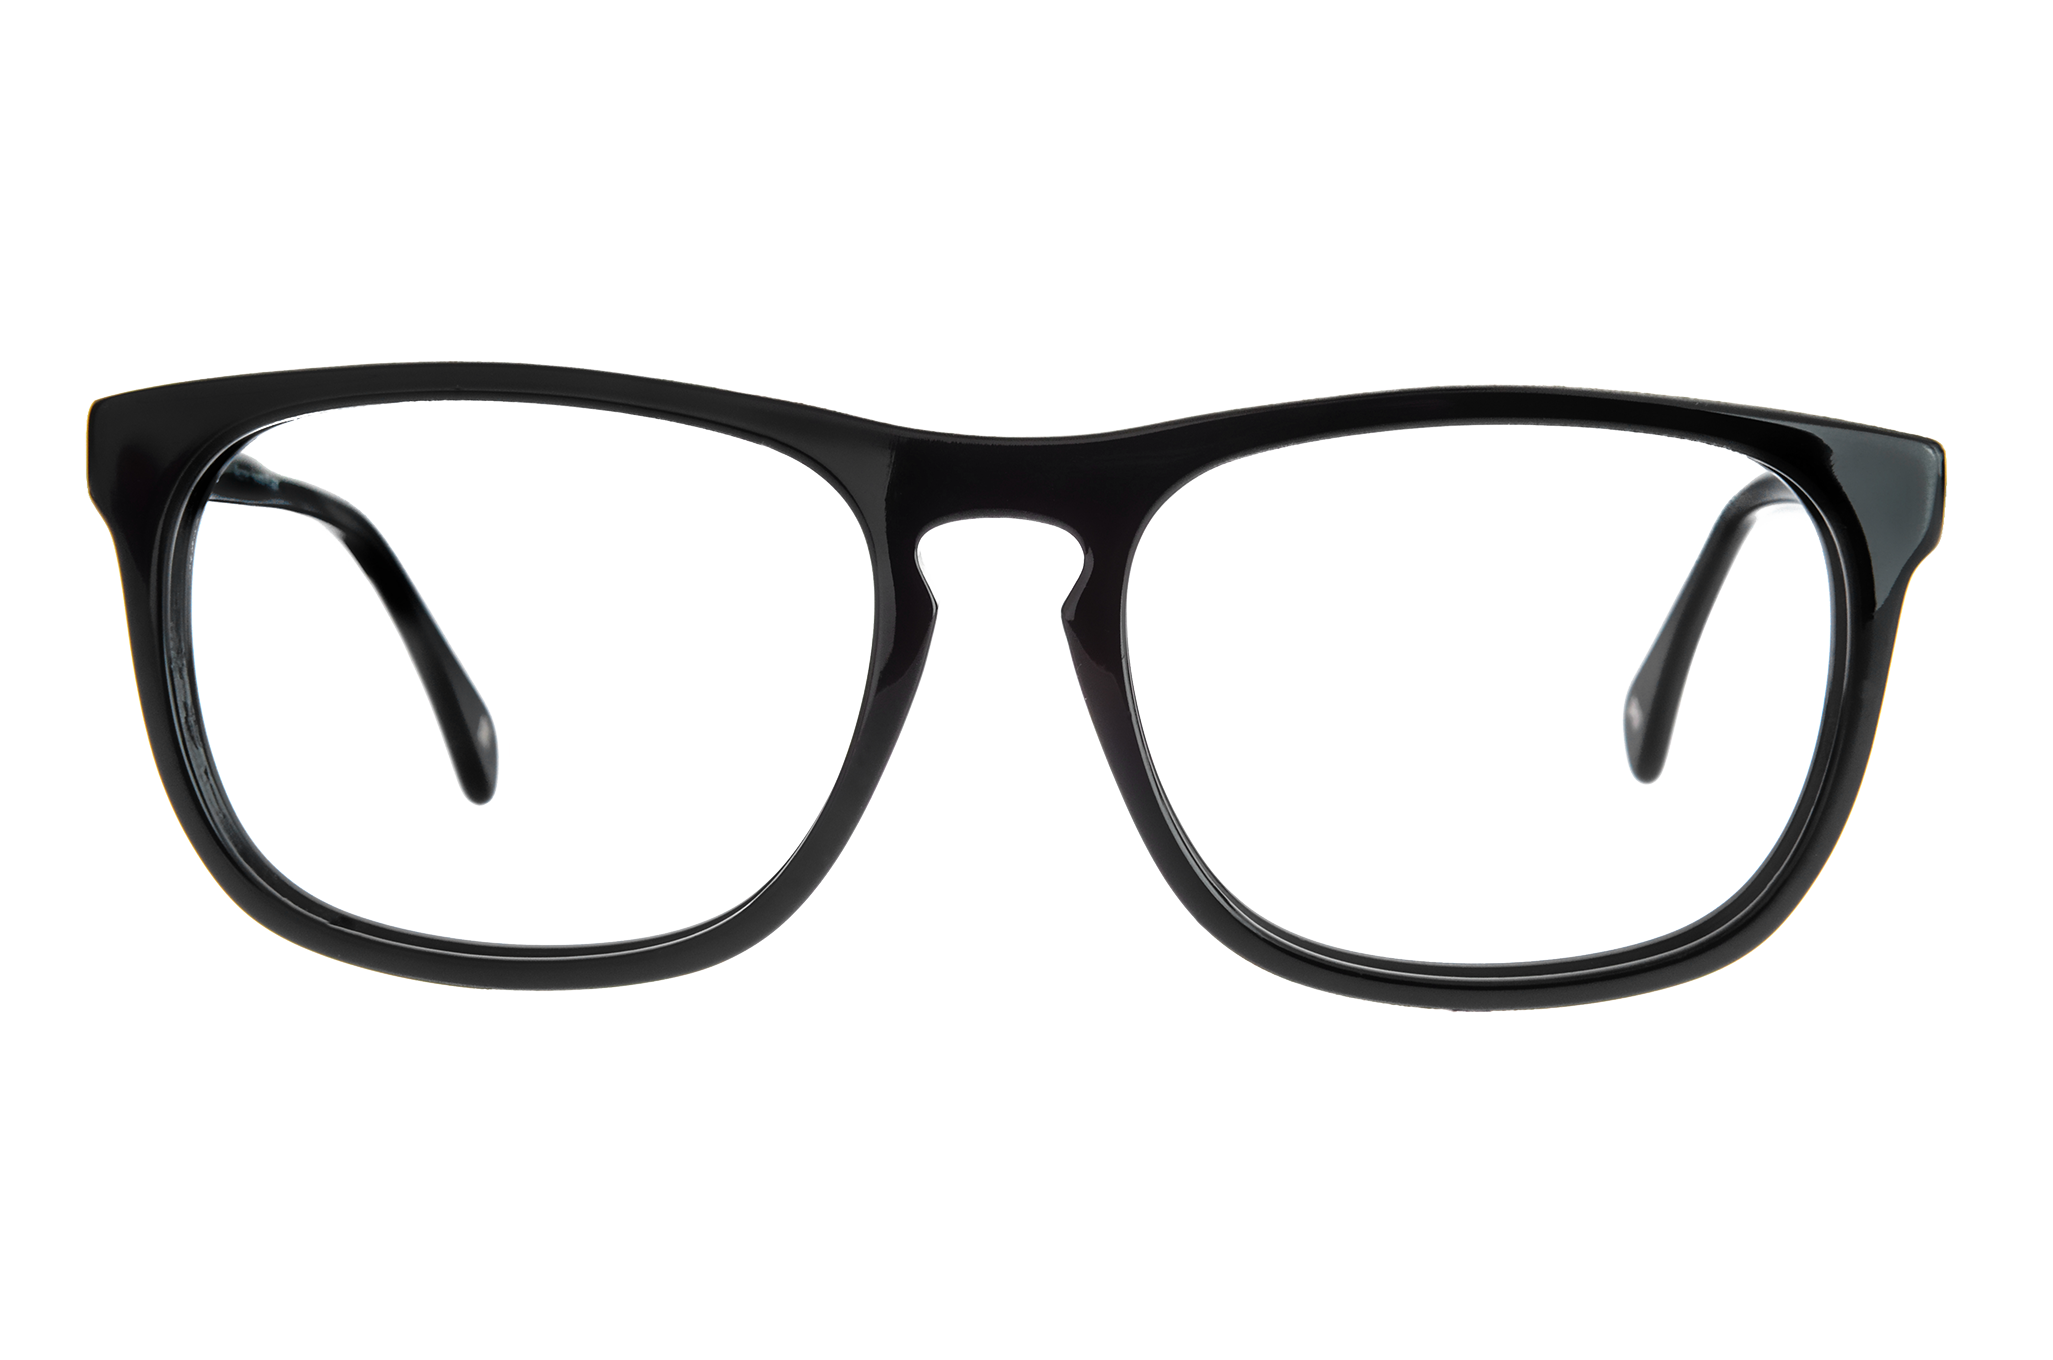 Glasses png images free. Goggles clipart vector clip black and white